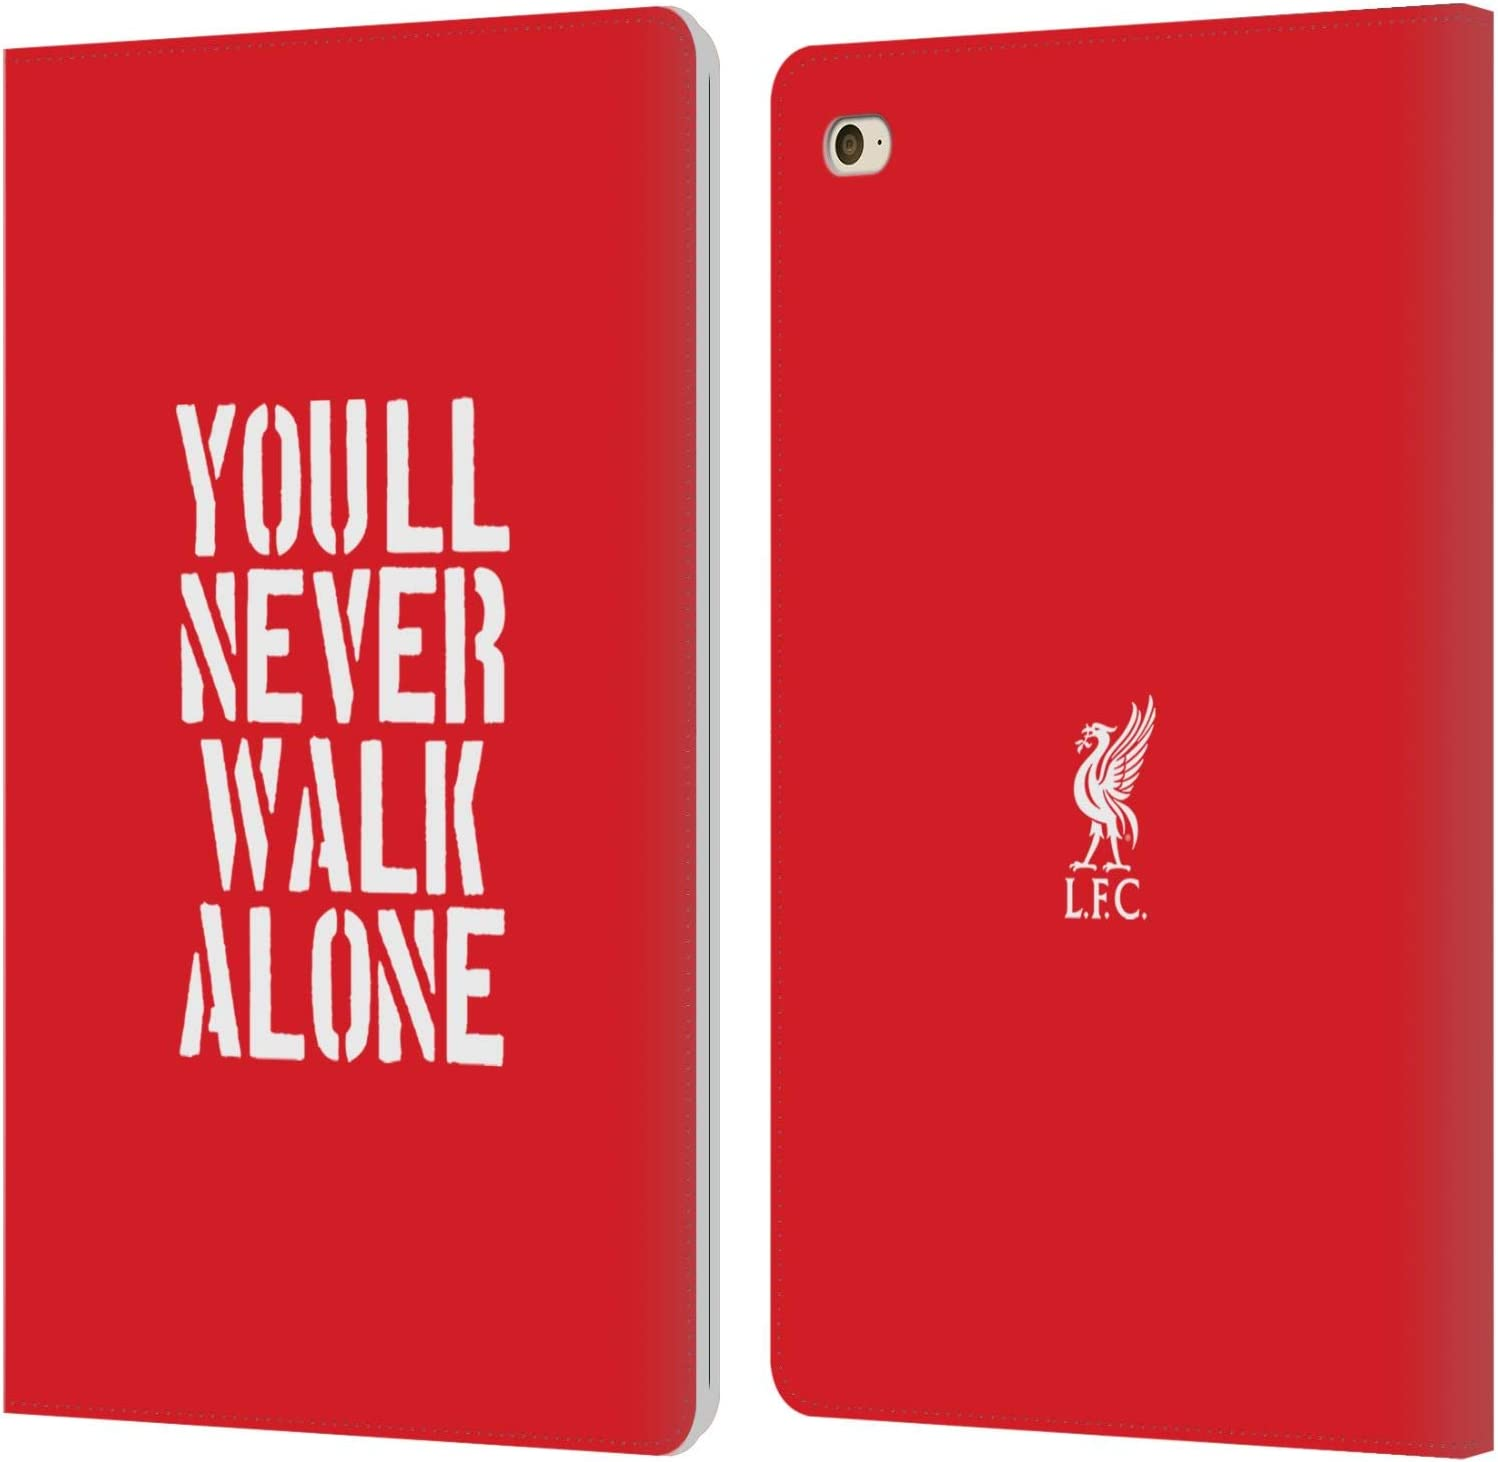 Head Case Designs Officially Licensed Liverpool Football Club Stencil Red Liver Bird YNWA PU Leather Book Wallet Case Cover Compatible with Apple iPad Mini 4